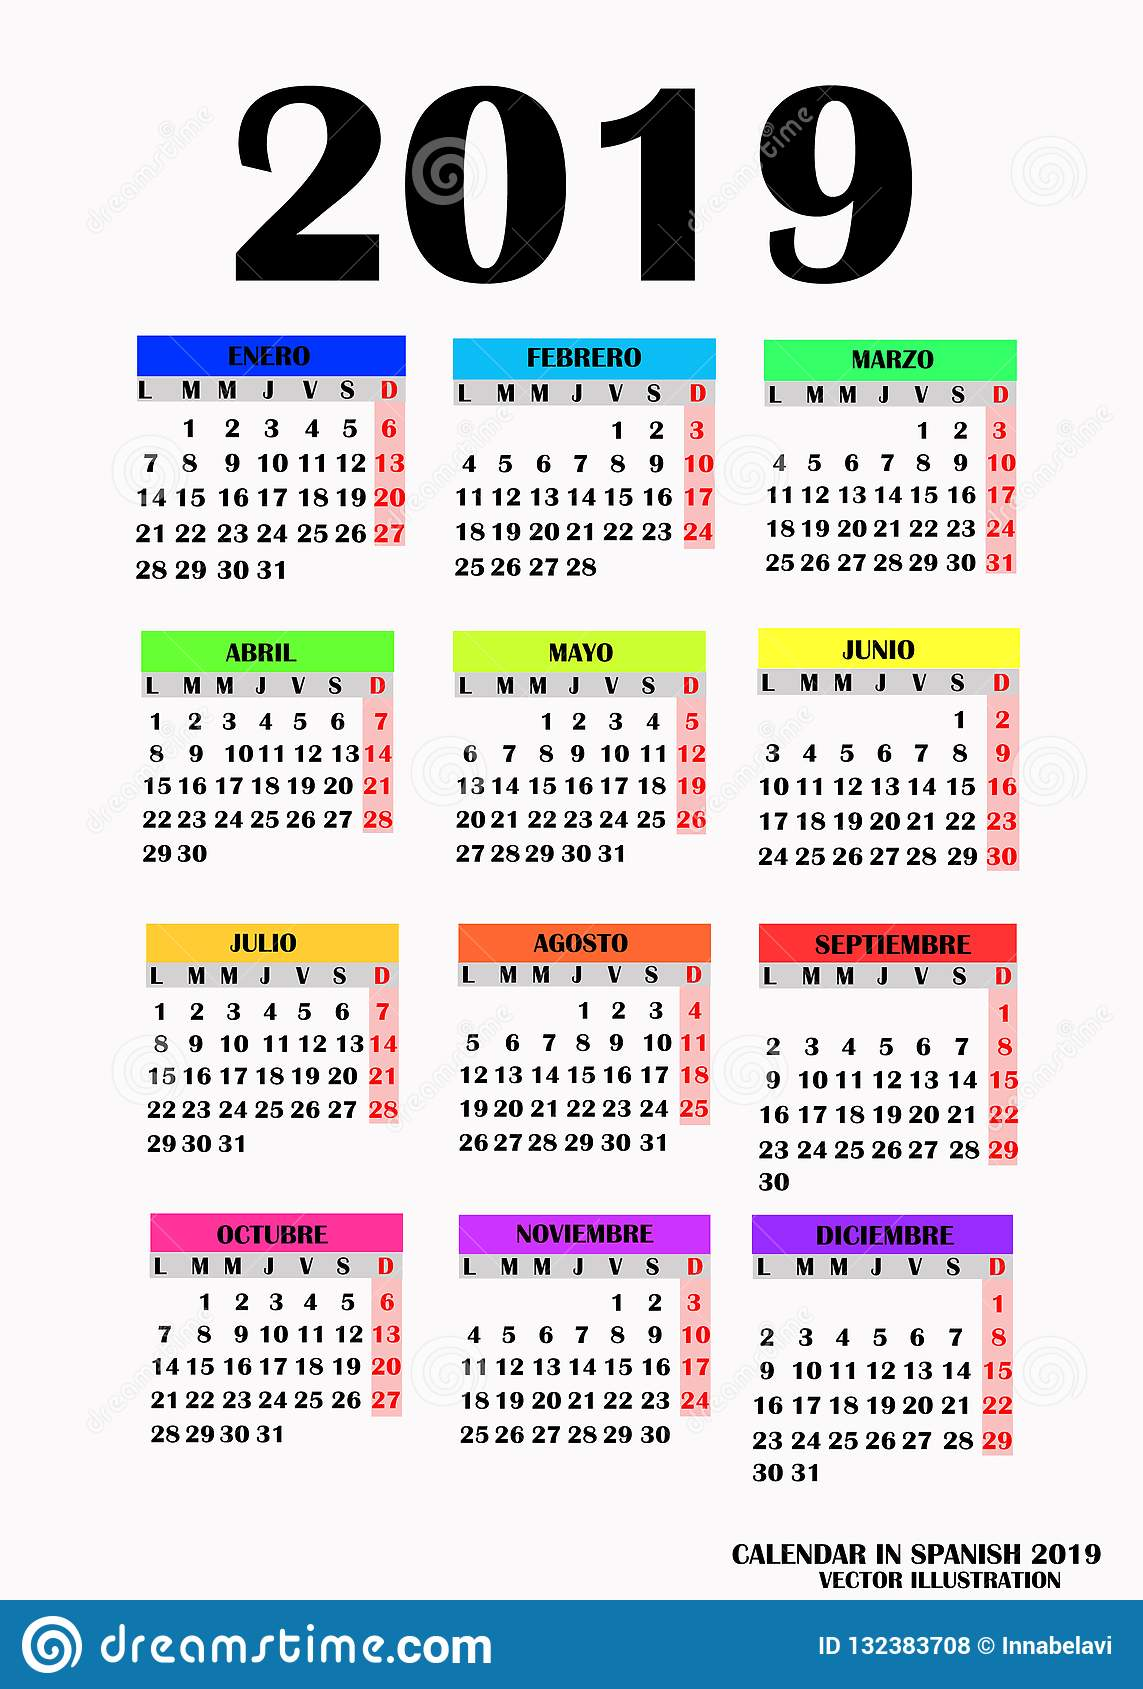 Calendrier 2019 Vectoriel.Conception Simple Pour Le Calendrier 2019 Vecteur